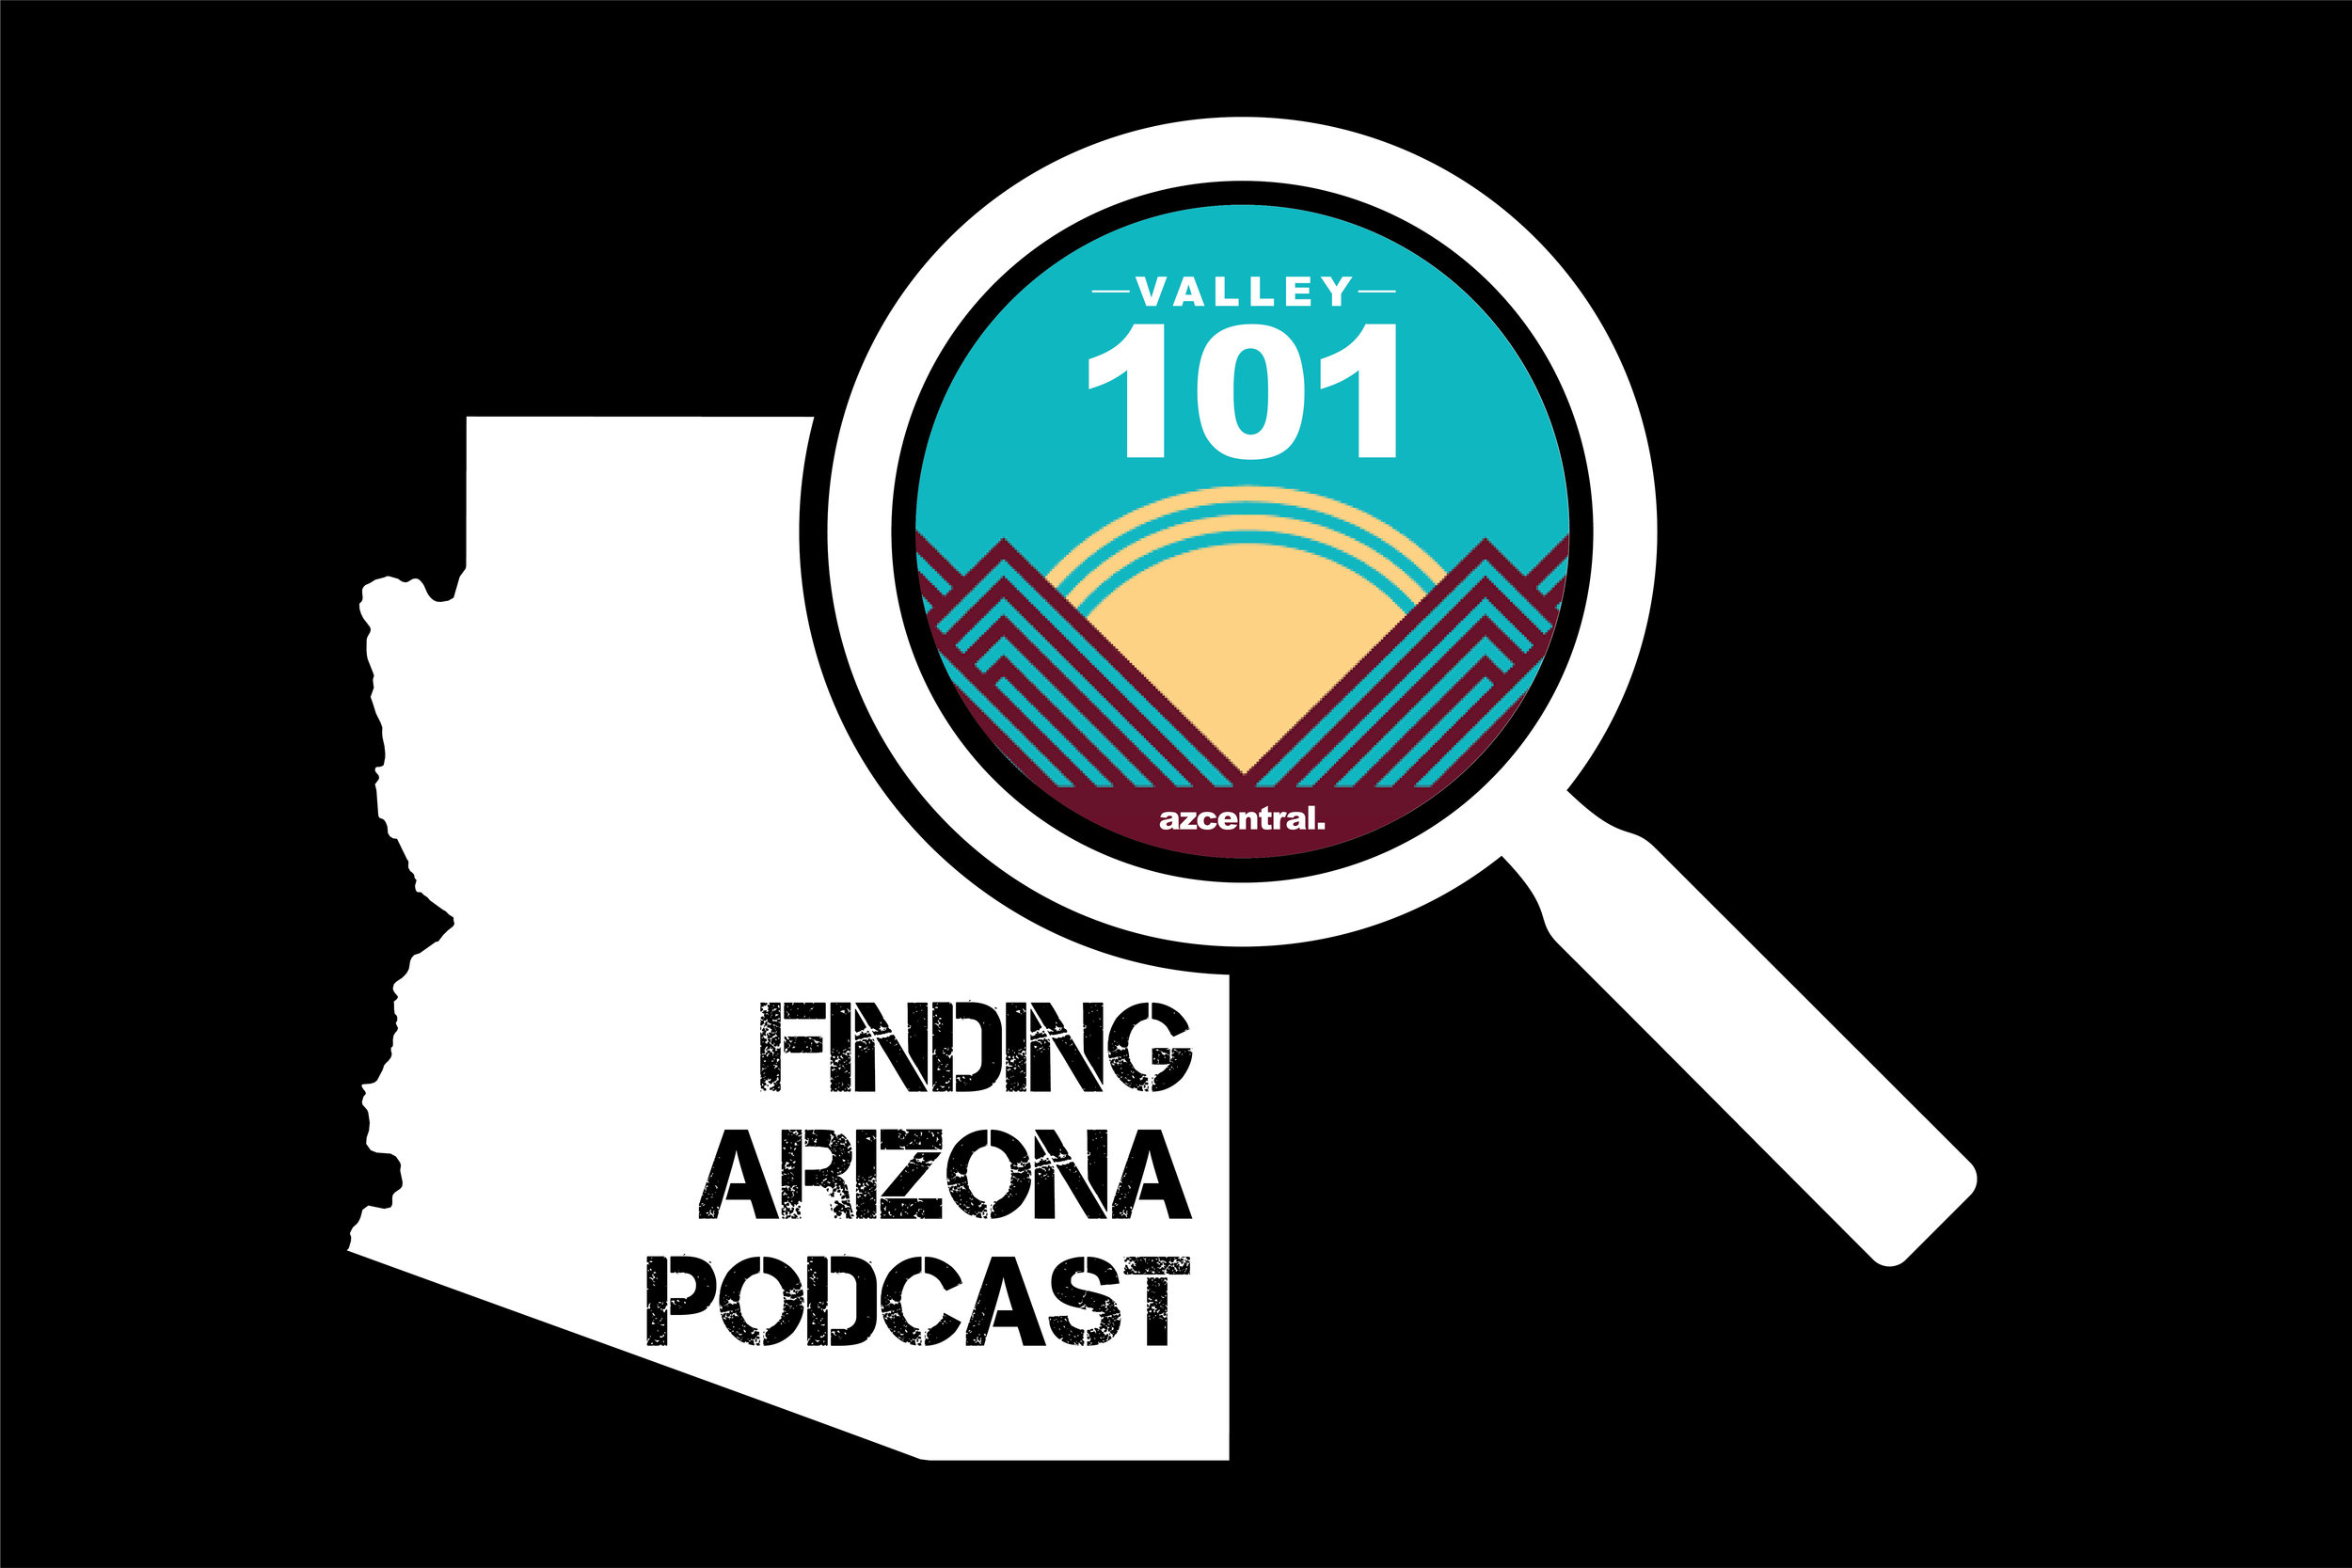 PodCastLogo-Valley101.jpg